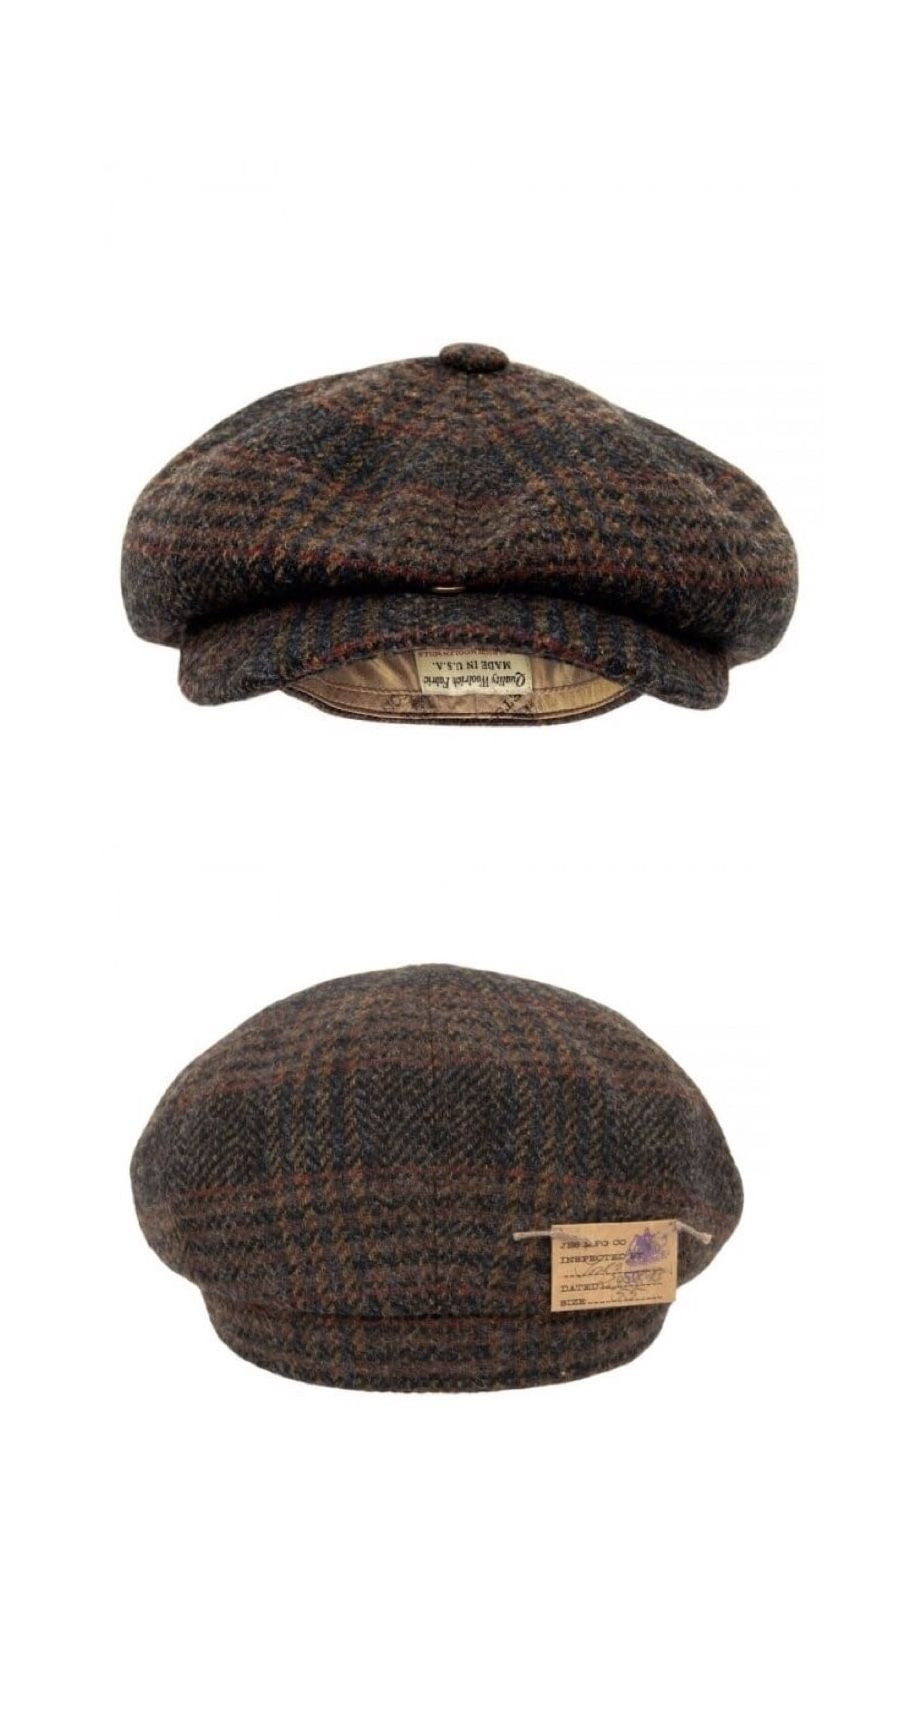 b80384e53d3 Stetson Hat- wool cap  99.00 Brown  menswear  hat